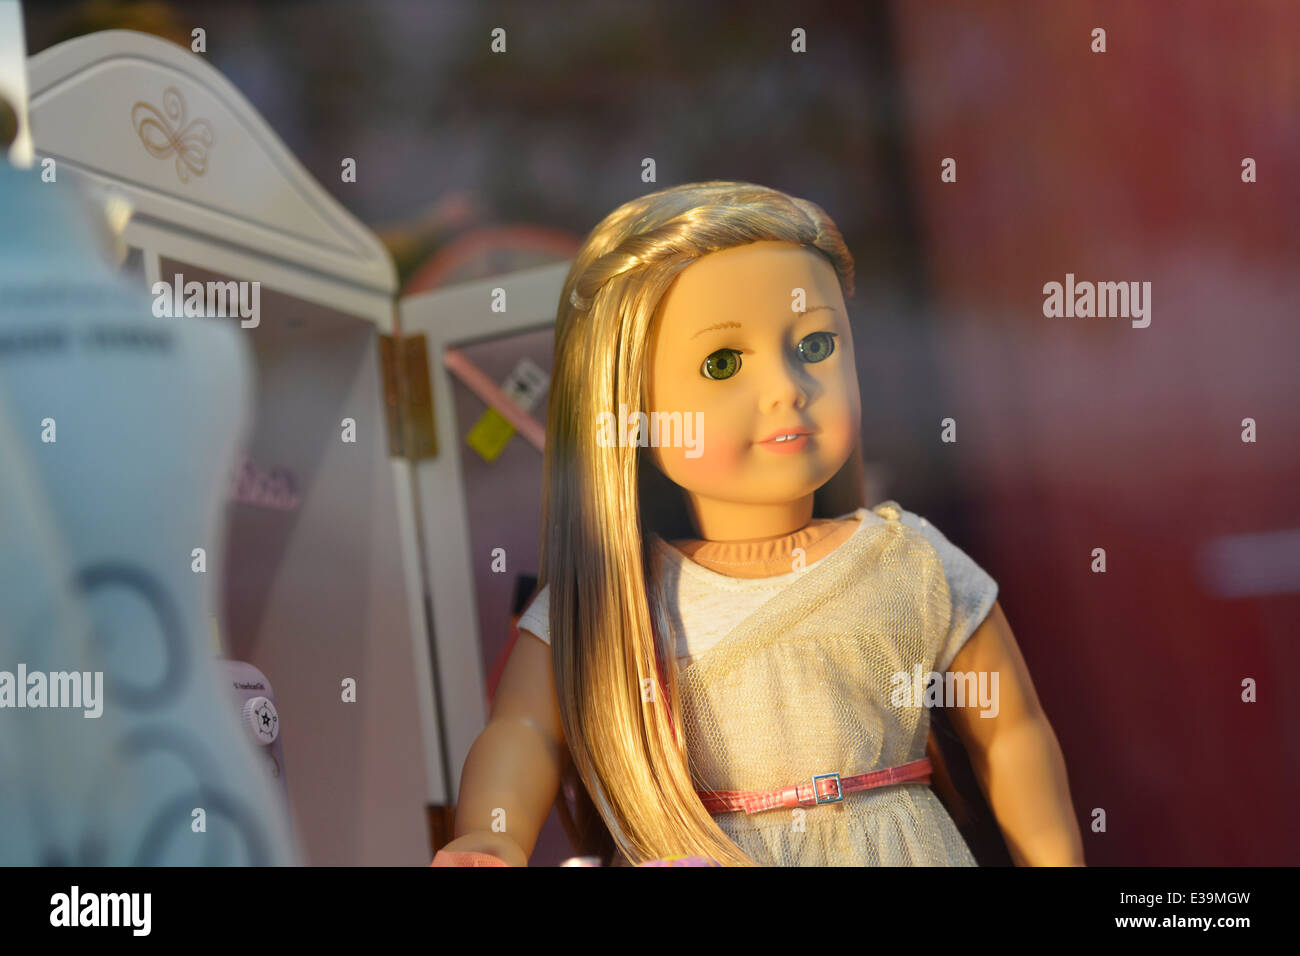 American Girl Doll Isabelle in Shop Window - Stock Image